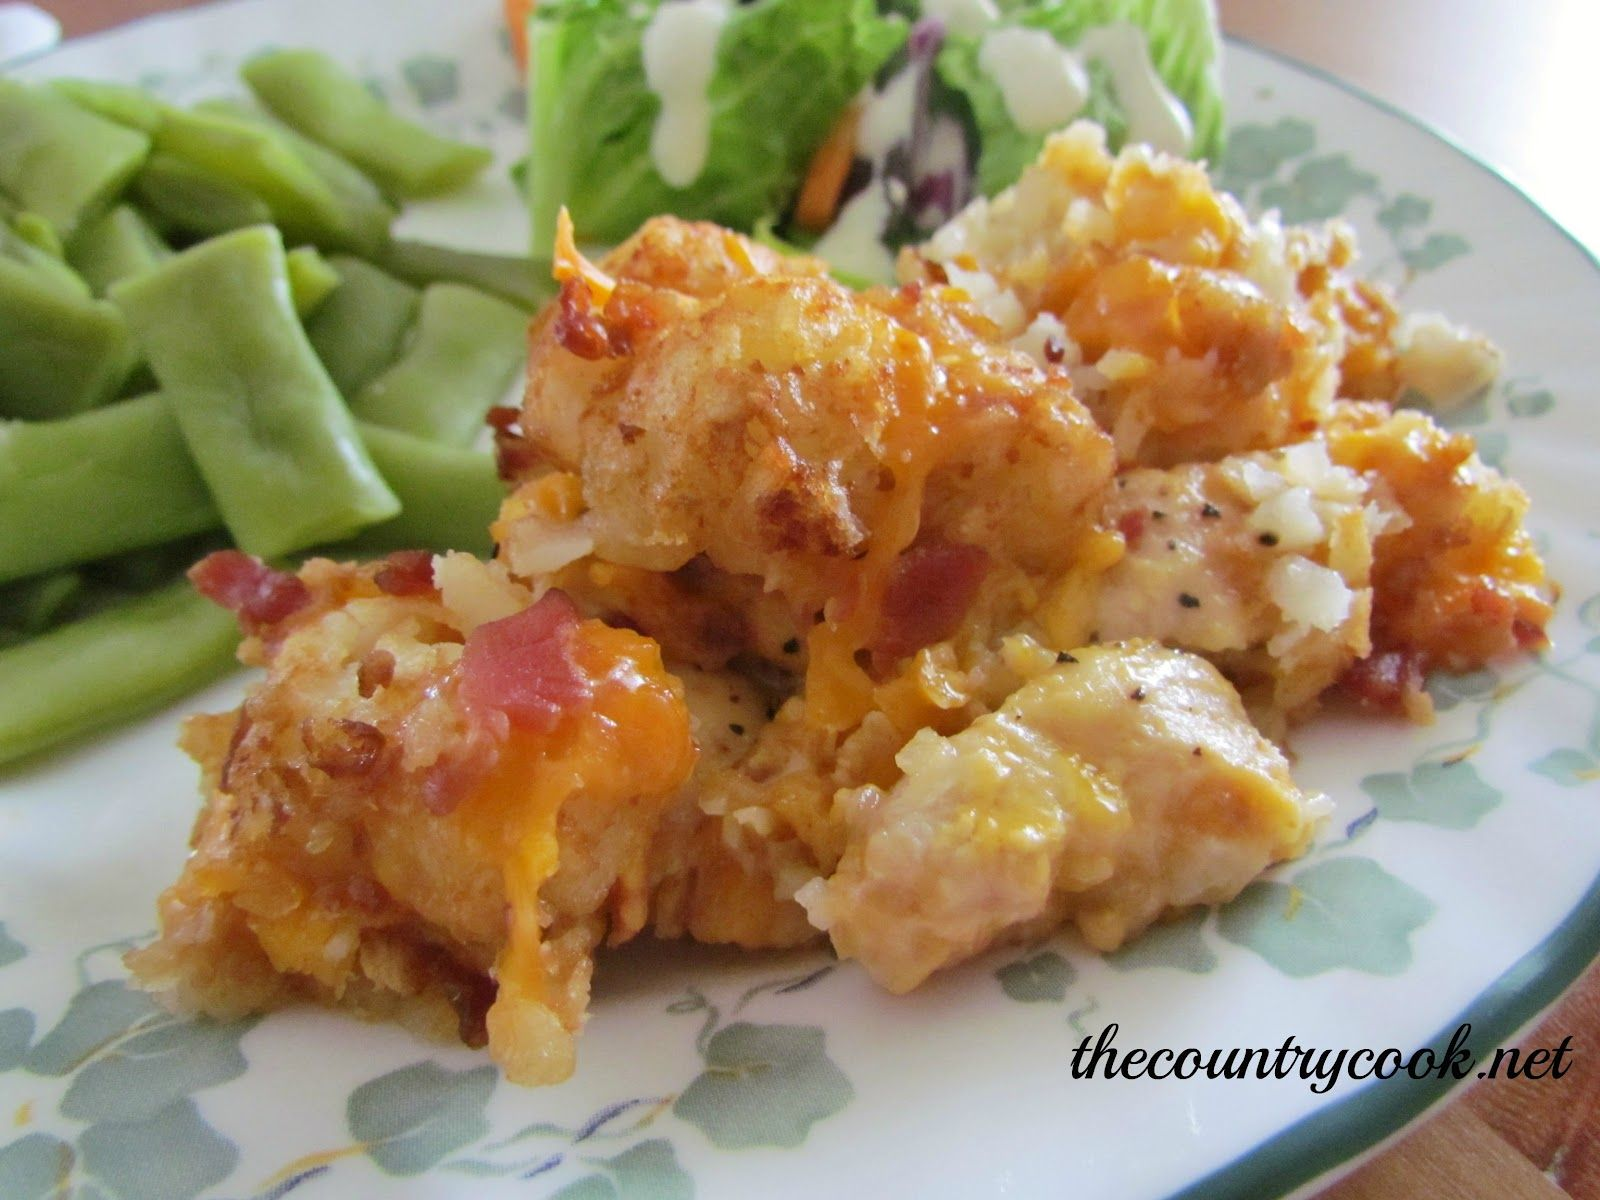 The Country Cook: Cheesy Chicken Tater Tot Casserole Slow Cooker or Oven